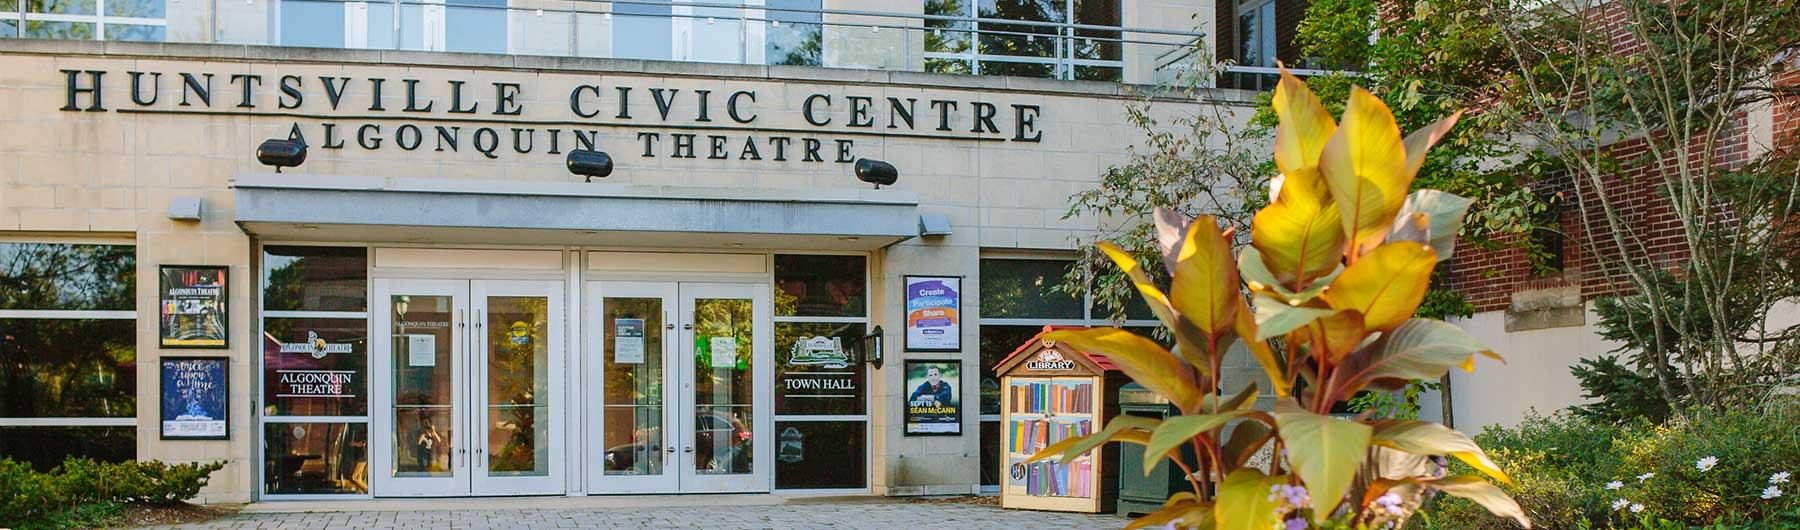 image of the Huntsville Civic Centre and Algonquin Theatre